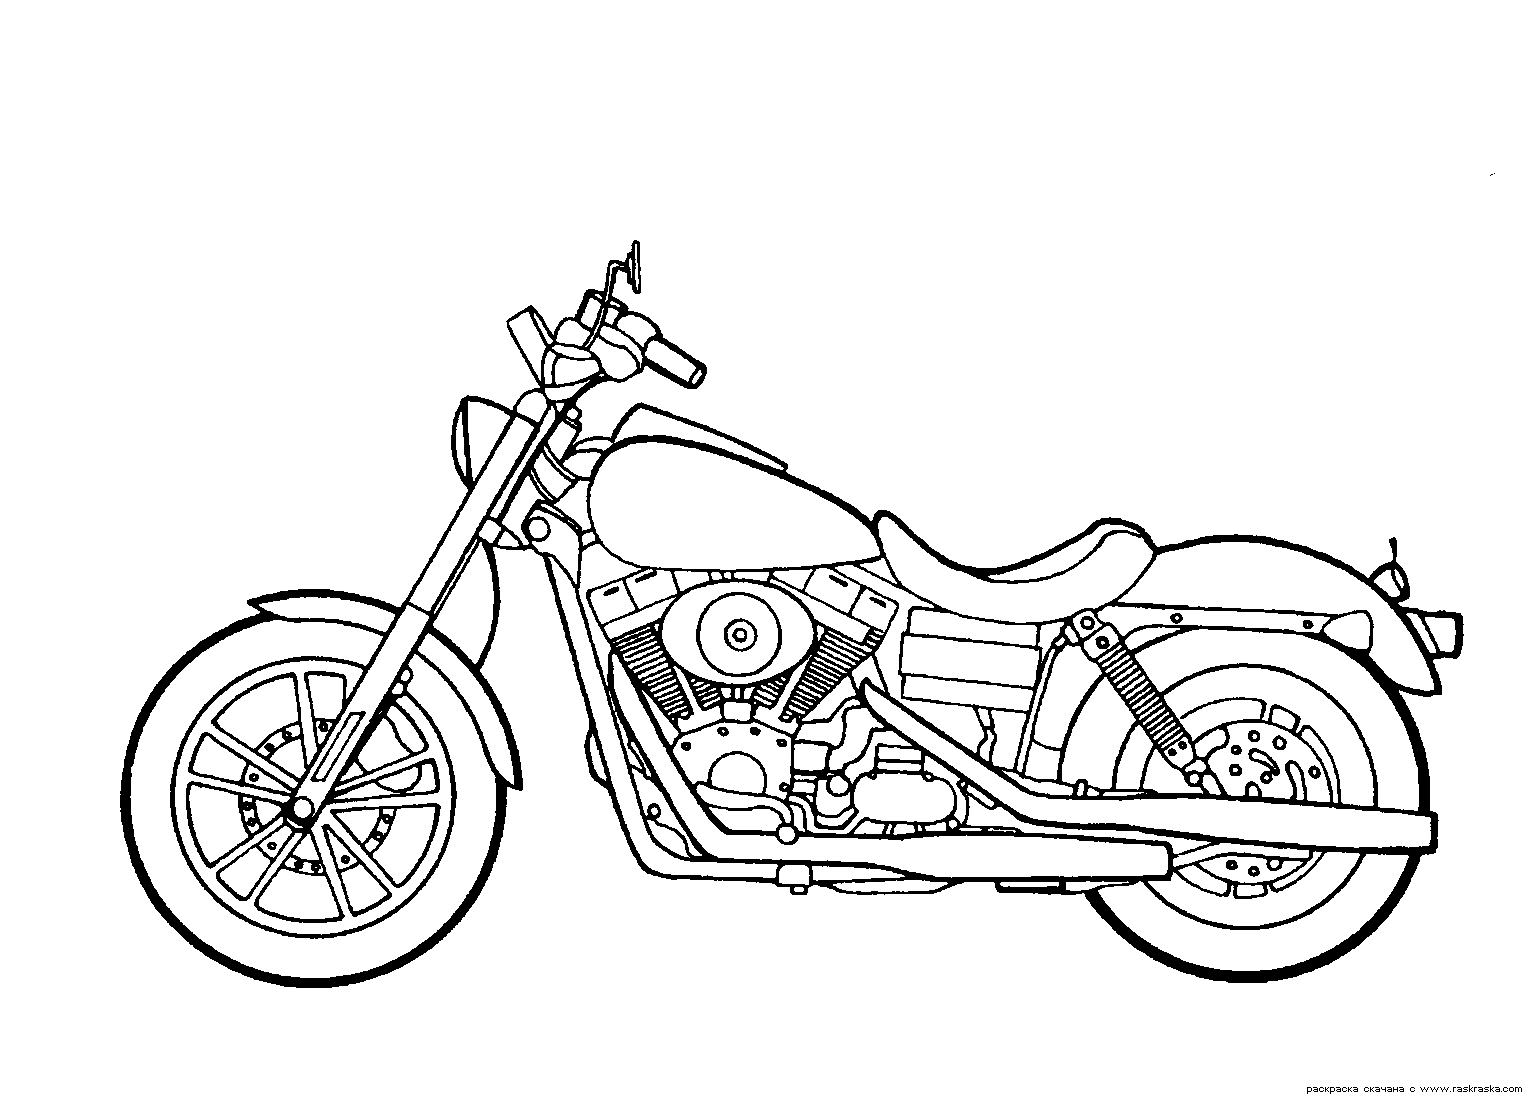 harley coloring pages - photo#14